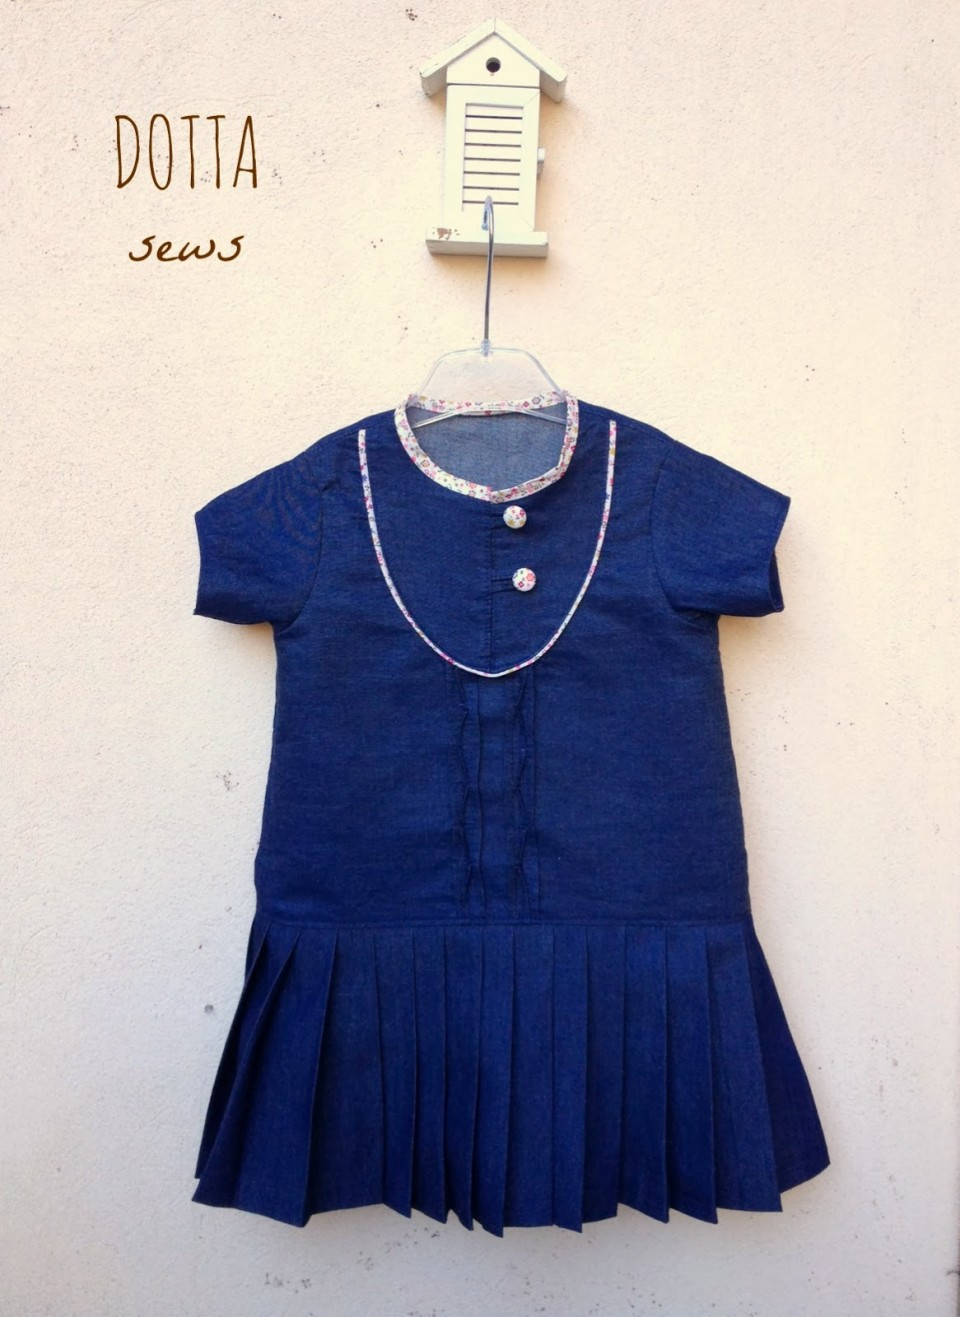 Dotta_denim_dress.jpg